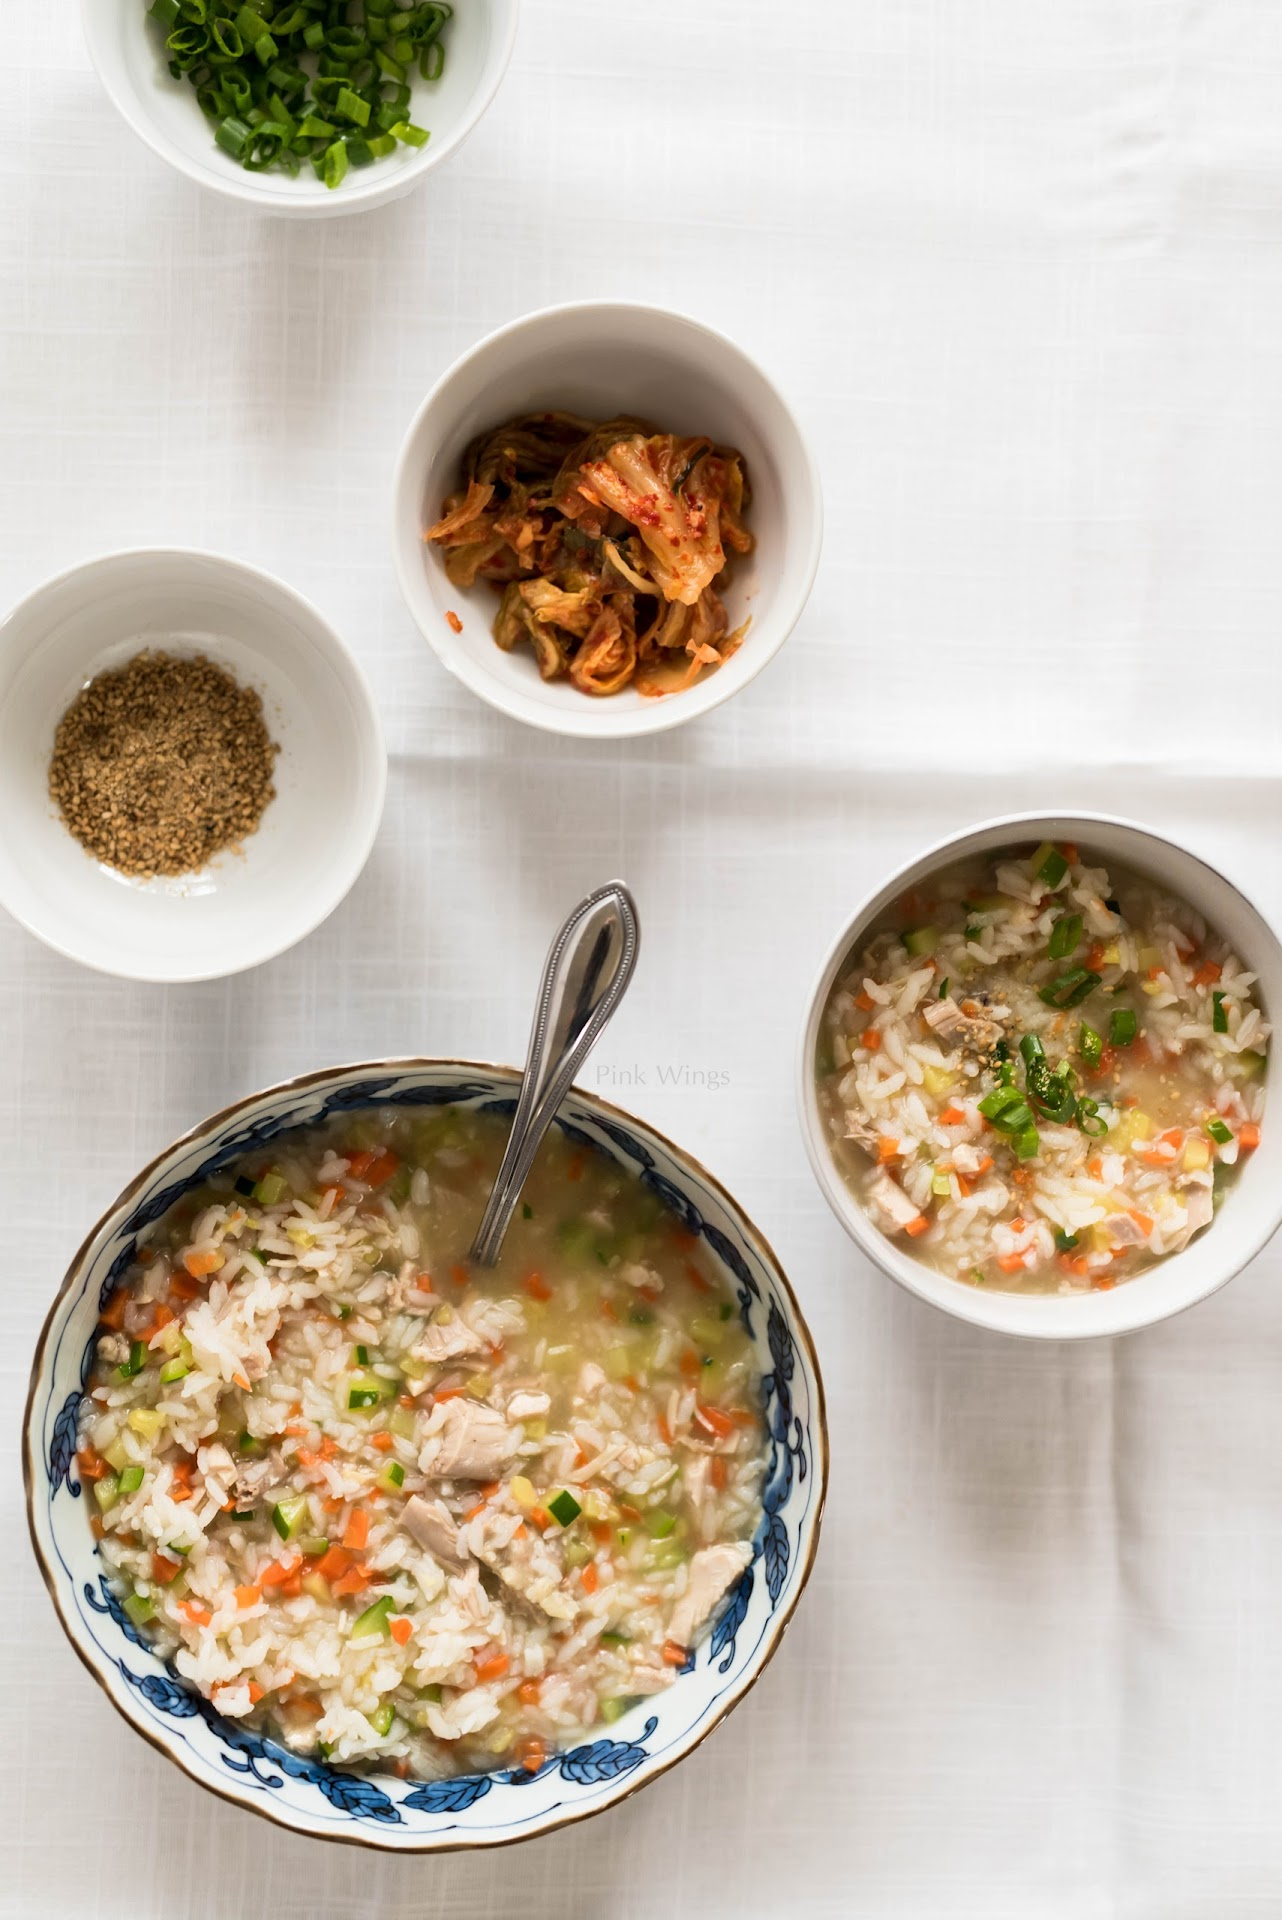 chicken porridge recipe, chicken thigh recipe, winter recipe, korean rice porridge, jook juk recipe, korean food, food for someone sick, easy rice recipe, korean food blog, winter comfort food, well-being food, korean meal,